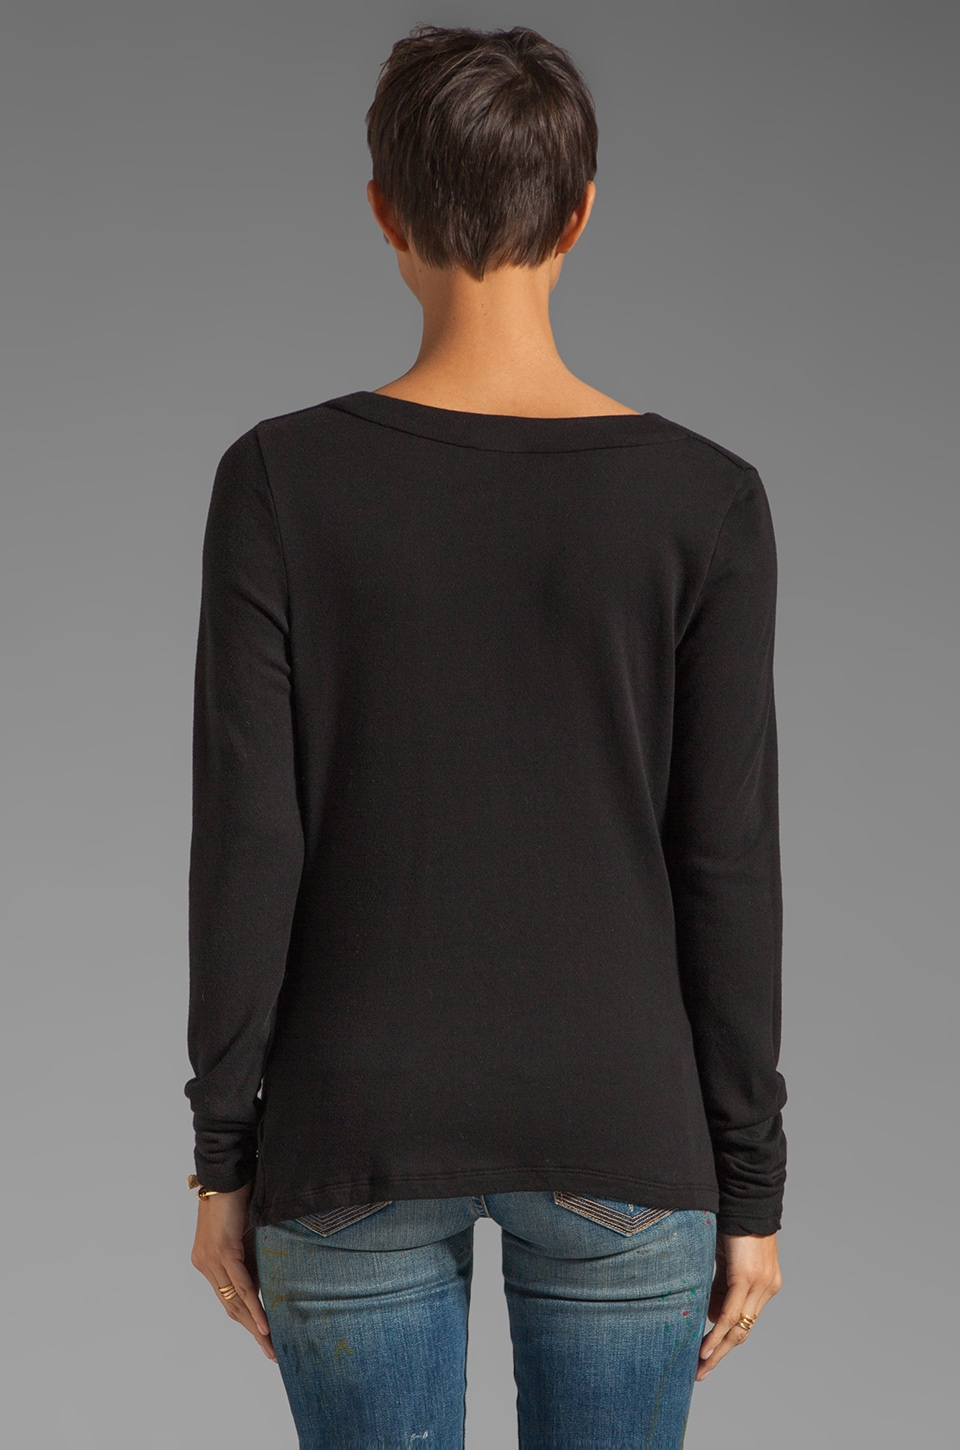 James Perse Lightweight Terry Cowl Neck Top in Black